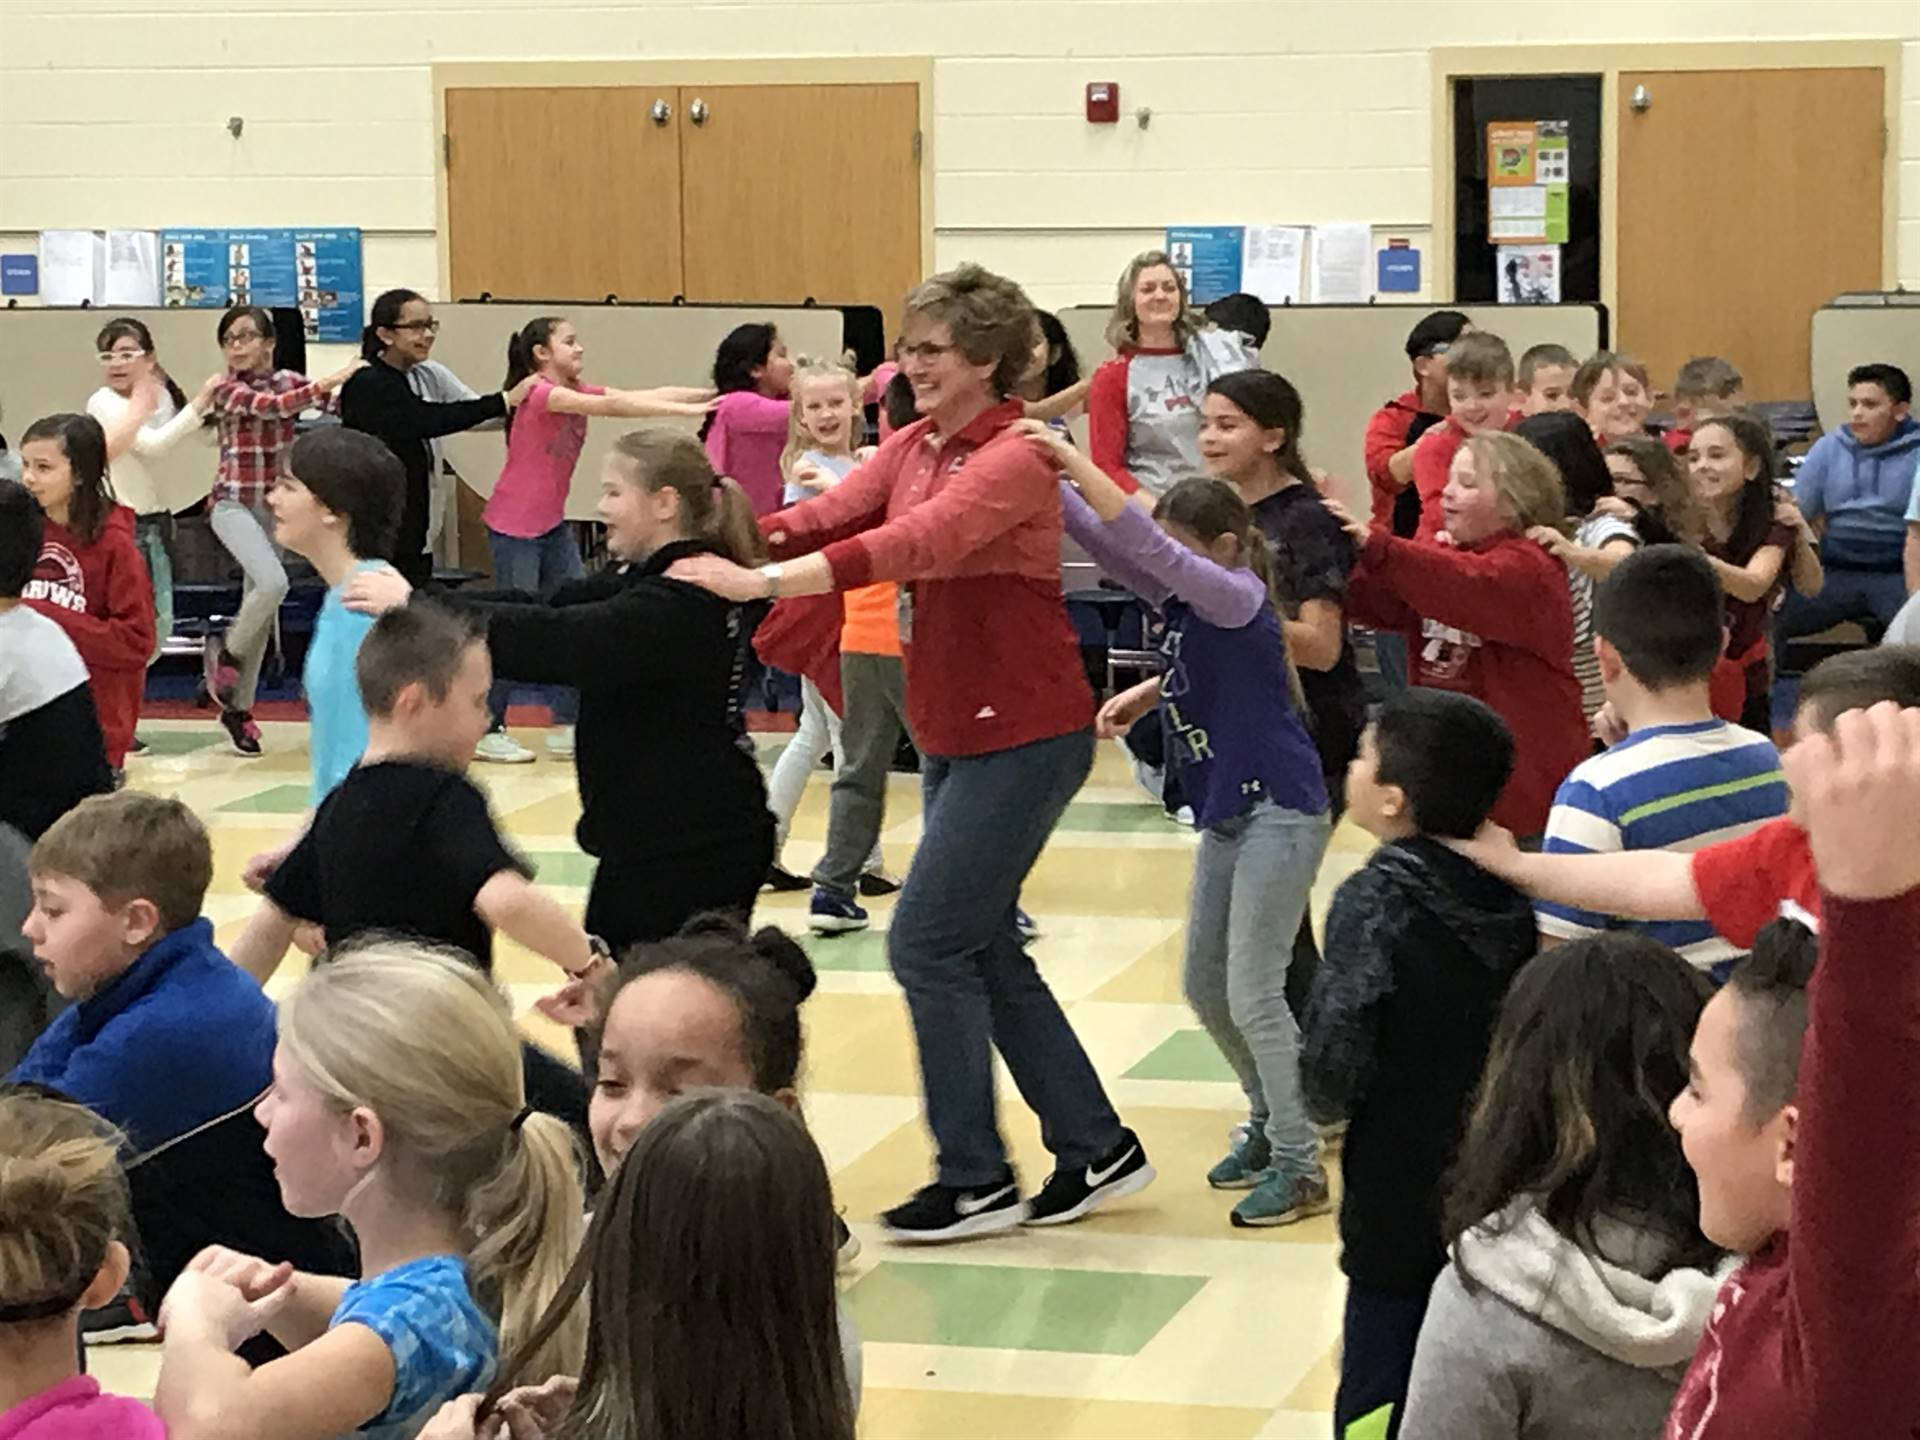 PBIS reward dance party photo in the cafeteria